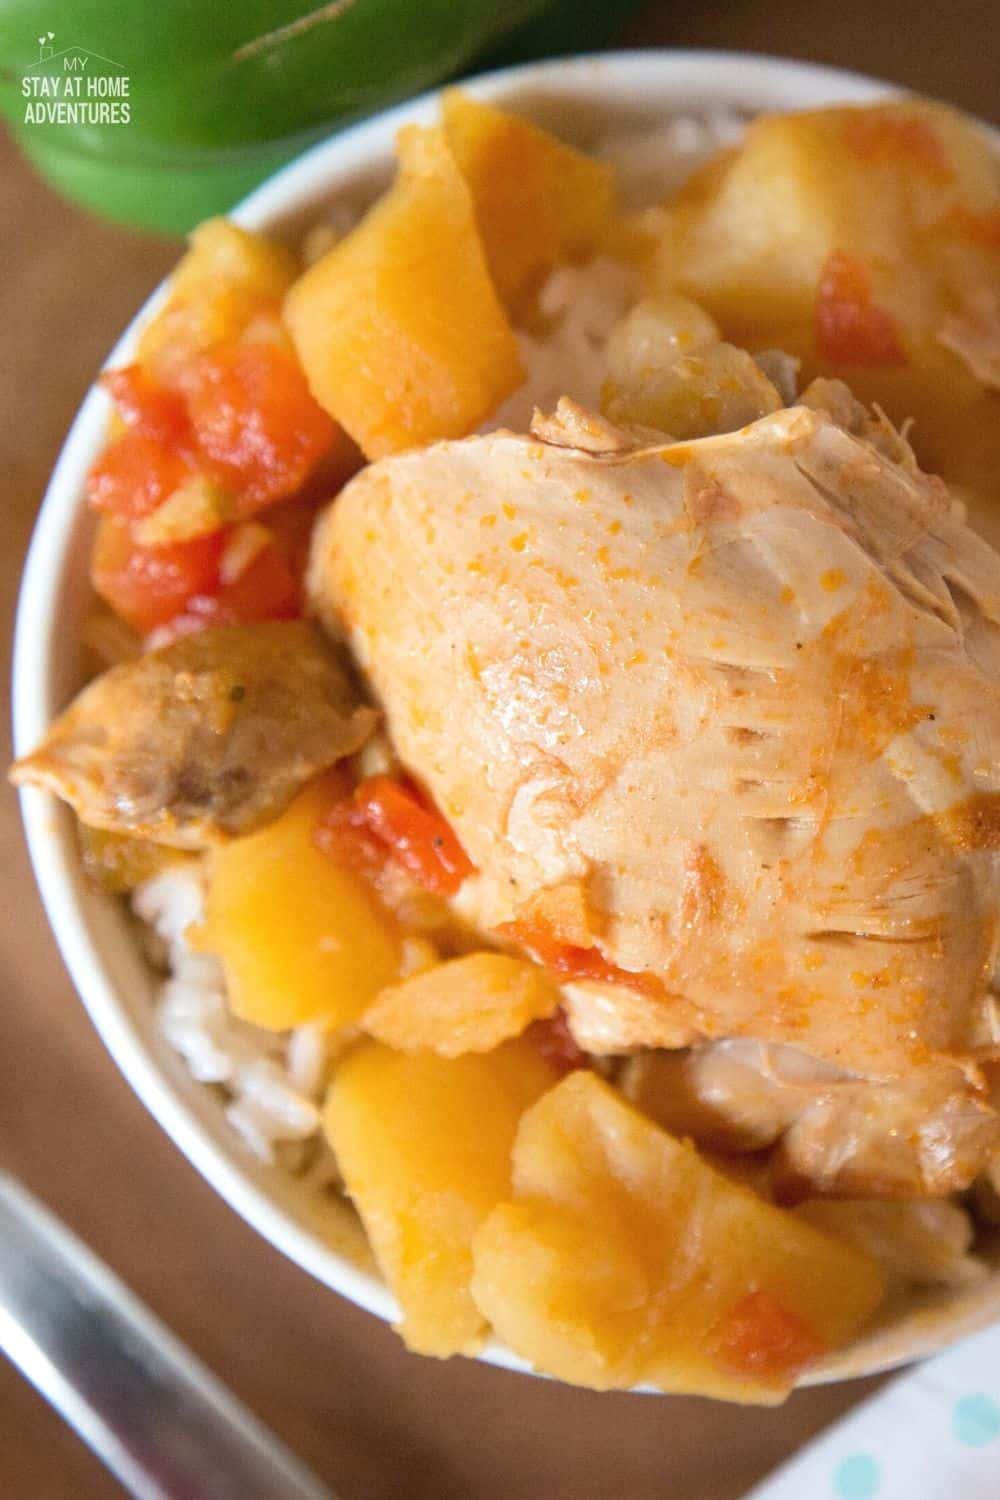 Learn how to create this delicious pollo guisado recipe using your Instant Pot! Puerto Rican chicken stew is so easy to make and taste just like home. via @mystayathome